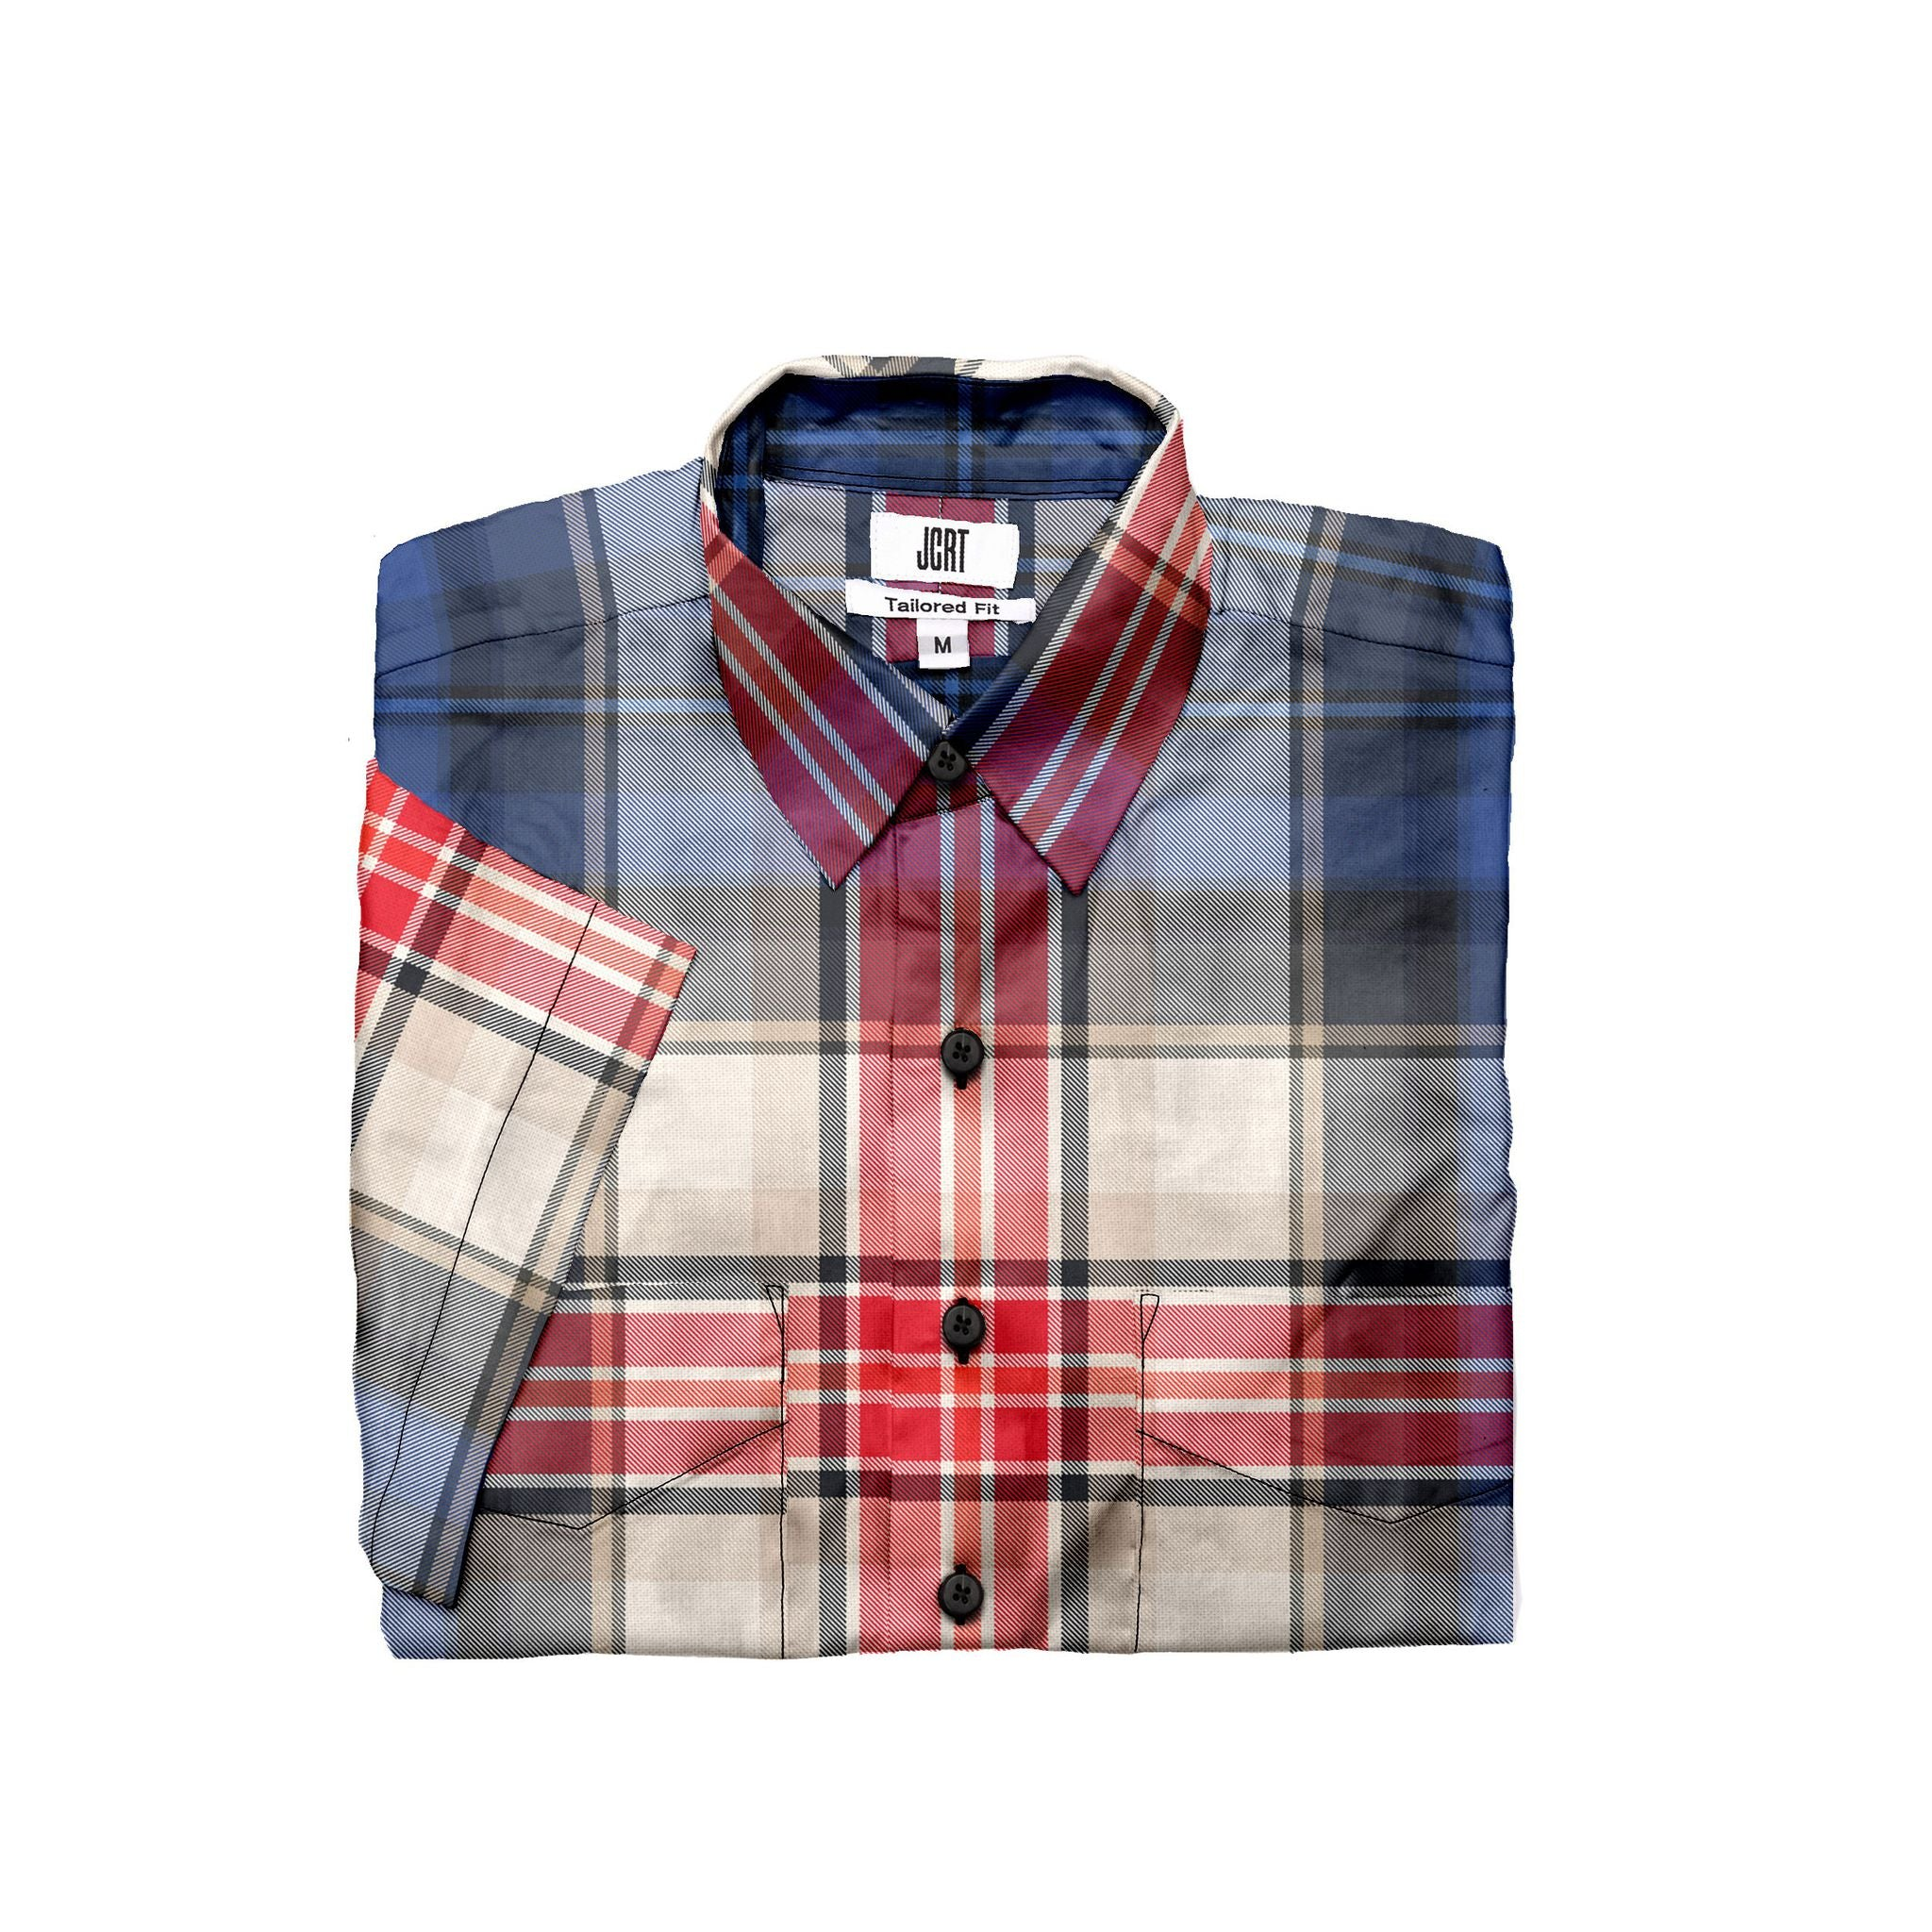 The Lovely Plaid Short Sleeve Shirt